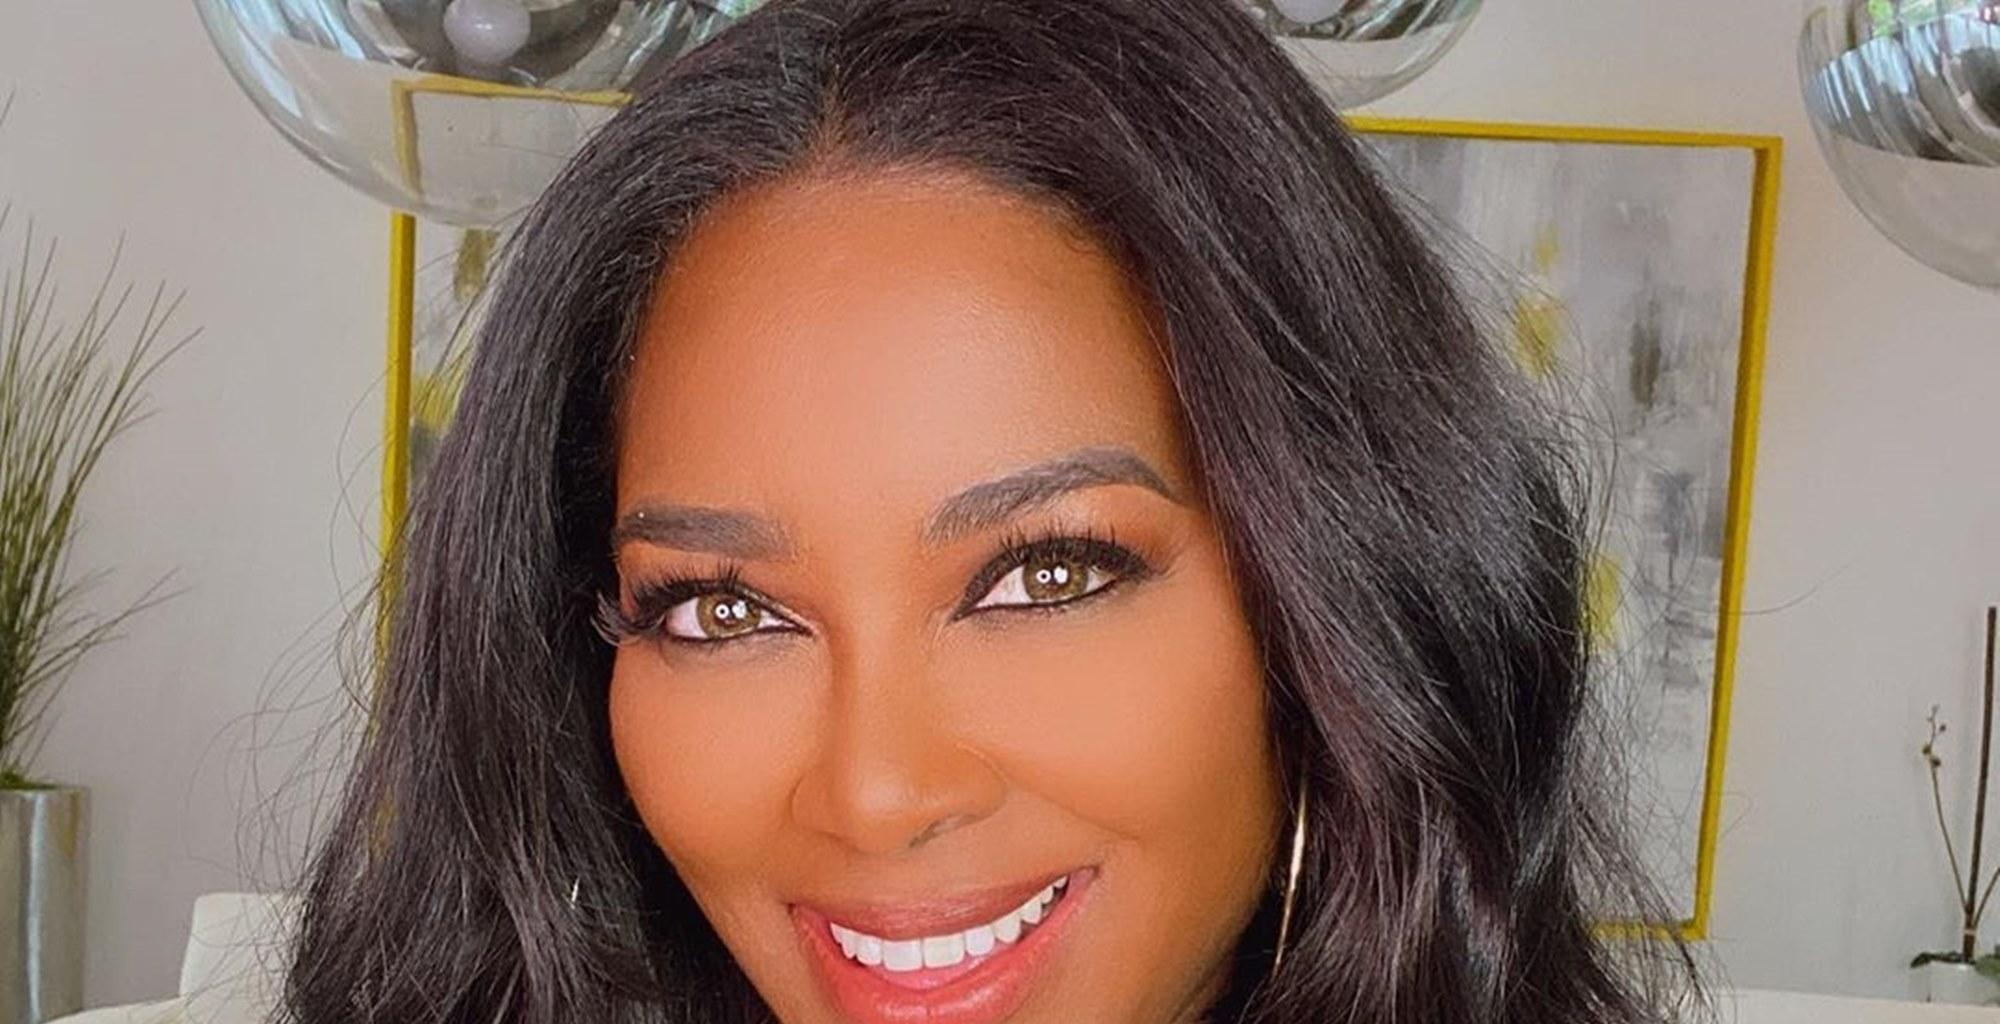 Kenya Moore's Latest Photo And Message Has Her Fans Saying That If Marc Daly Doesn't Get His Act Together, He's A 'Loser'